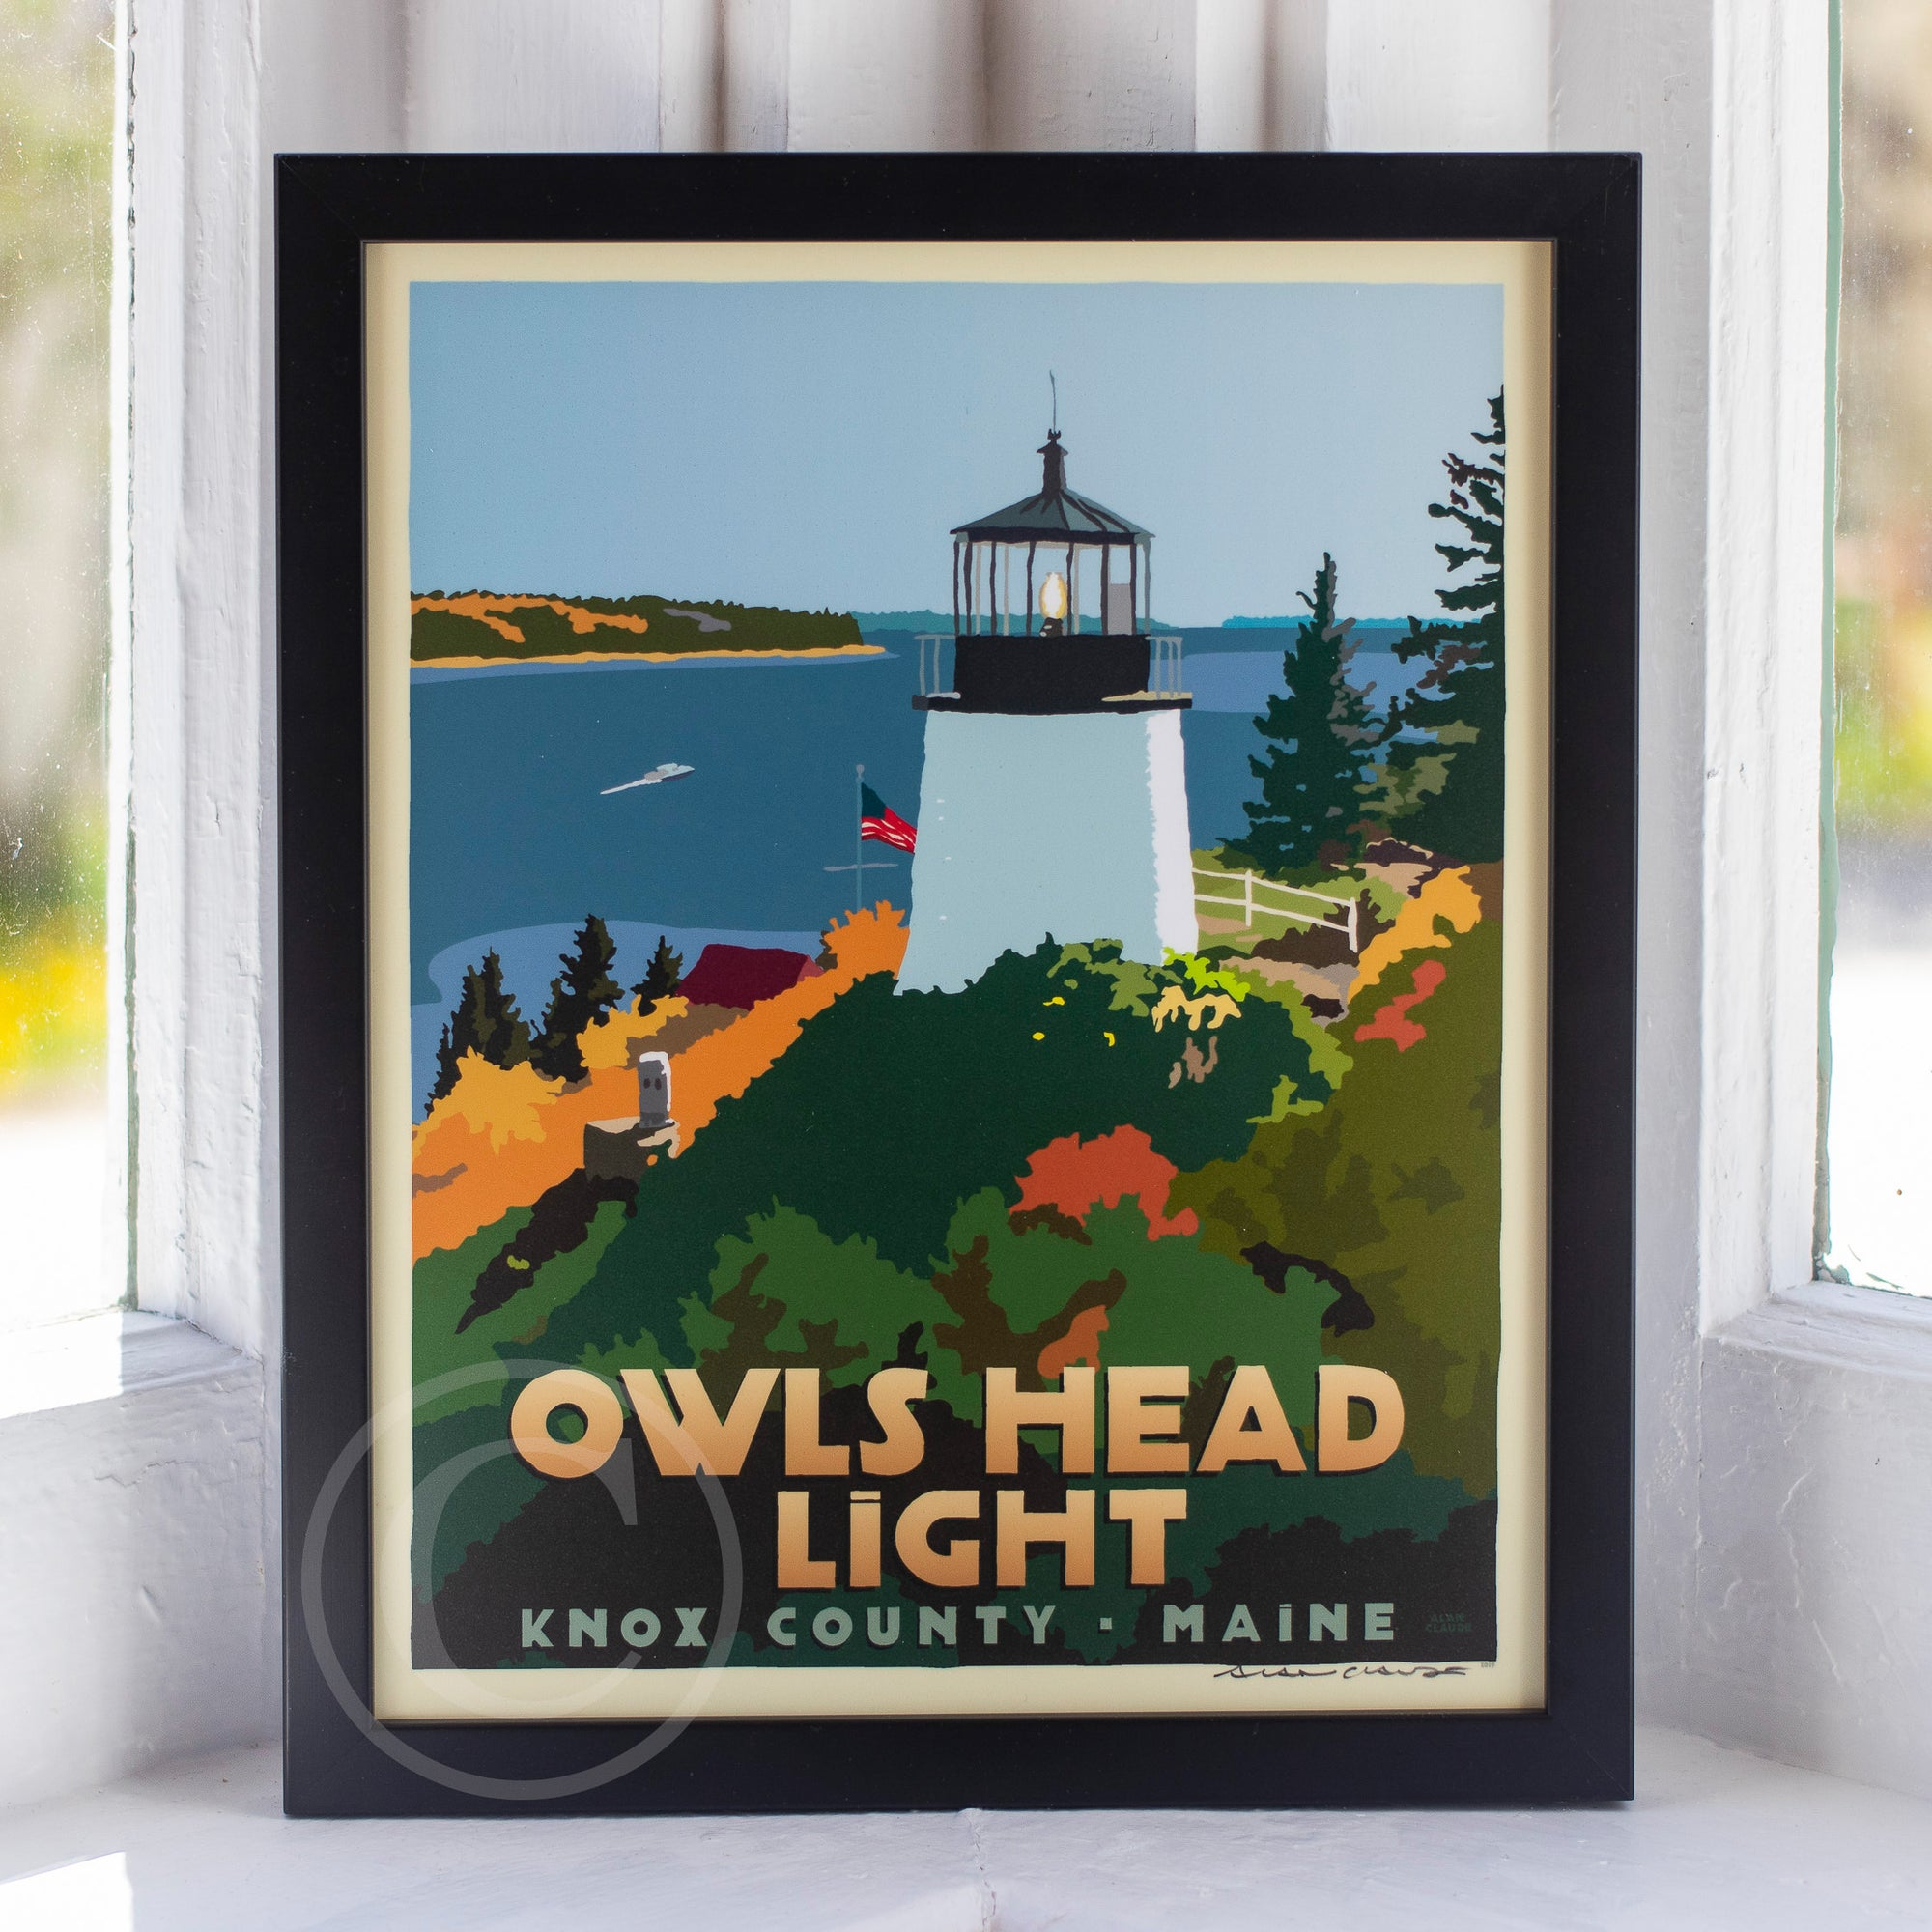 "Above Owls Head Light Art Print 8"" x 10"" Framed Travel Poster - Maine"